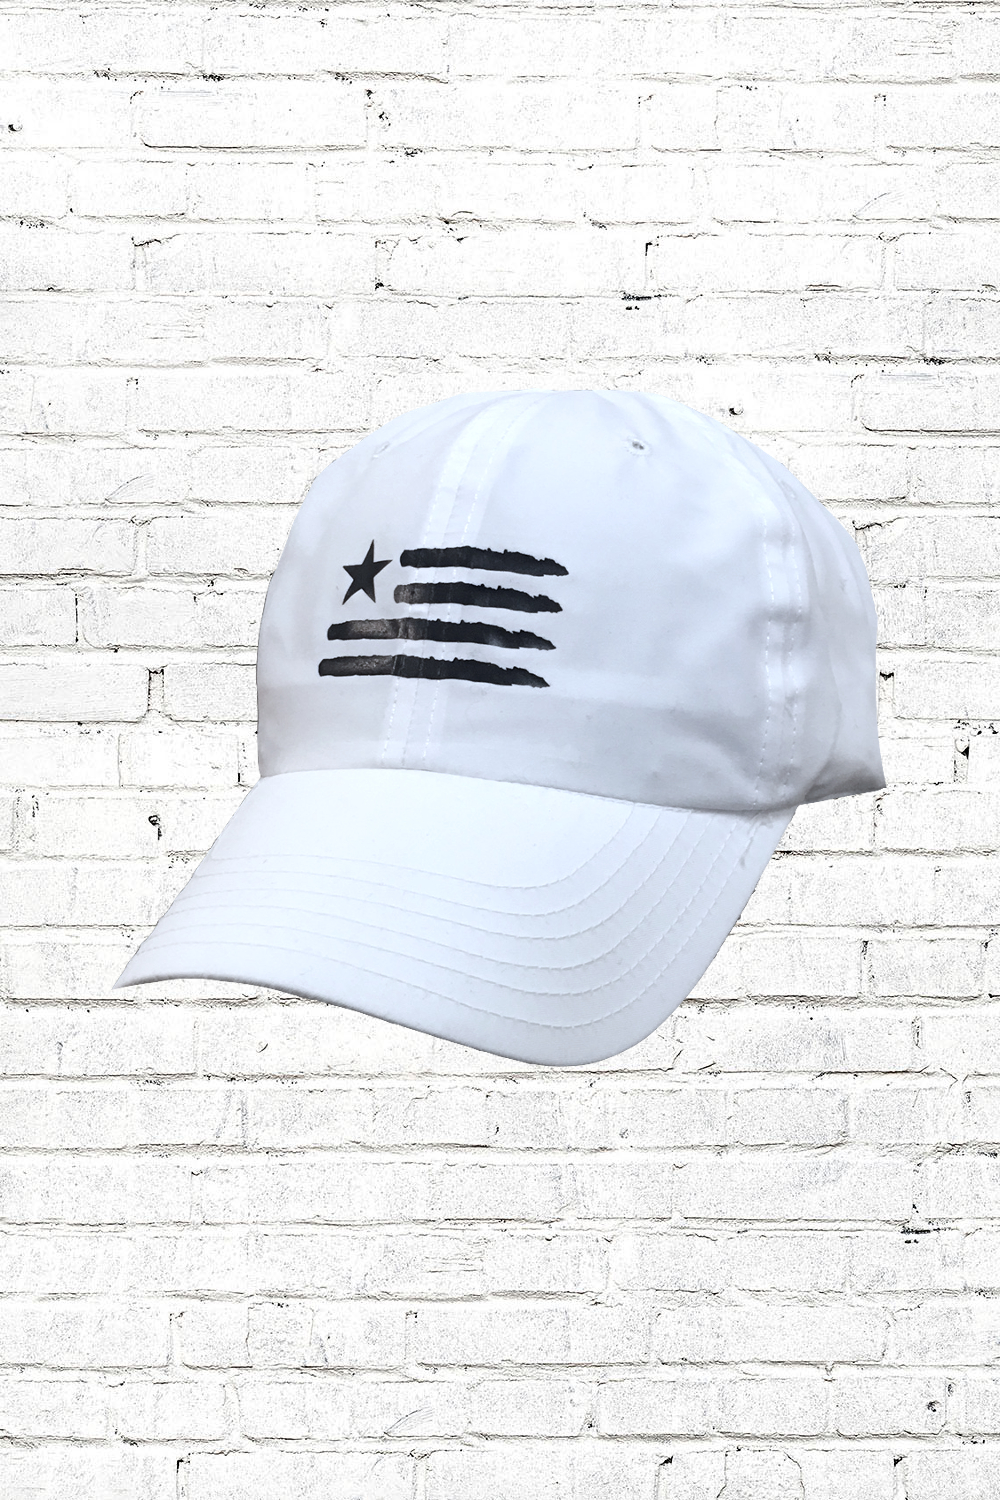 Flag Hat - $28.00The Lightest Hat in the World! SPF/UPF 50+ performance helps block nasty UV rays. Breathable and moisture wicking. Anti-microbial & stain resistant. Lite Fiber Brim.This hat floats! Now you can retrieve your hat from the water on those windy days at sea.Available in White or NavyMade in the USA.BUY NOW